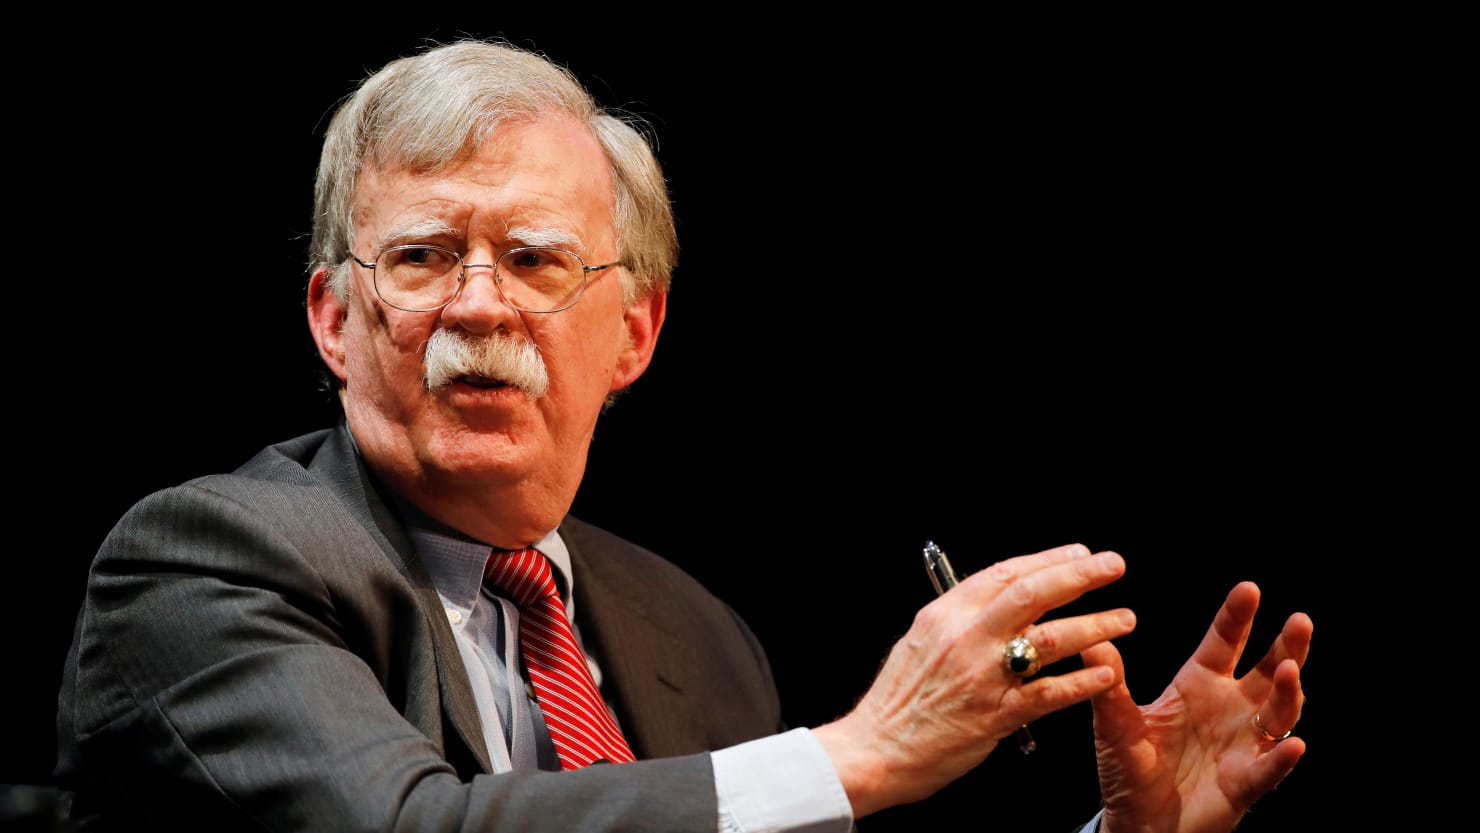 Photo of Bolton Files Motion to Dismiss DOJ Lawsuit, Calls It 'Pretext' to Silence Him | The Daily Beast